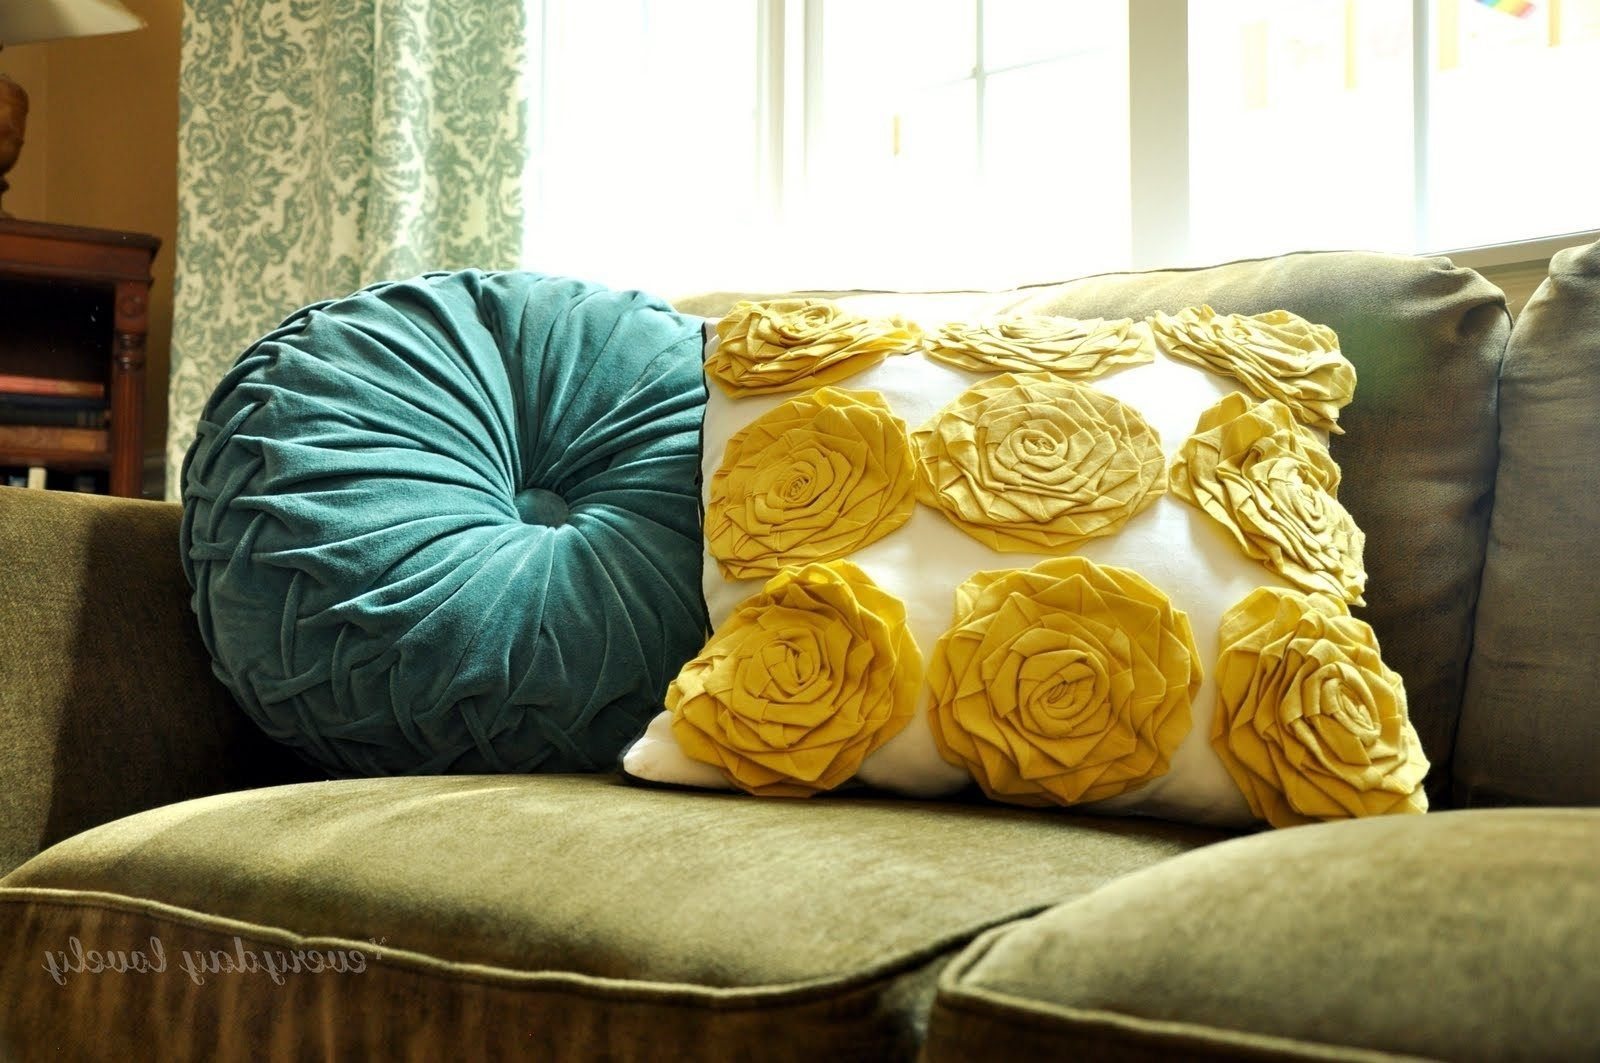 Groovy What Color Goes With Olive Green Couch Pillows So Perfectly Ibusinesslaw Wood Chair Design Ideas Ibusinesslaworg